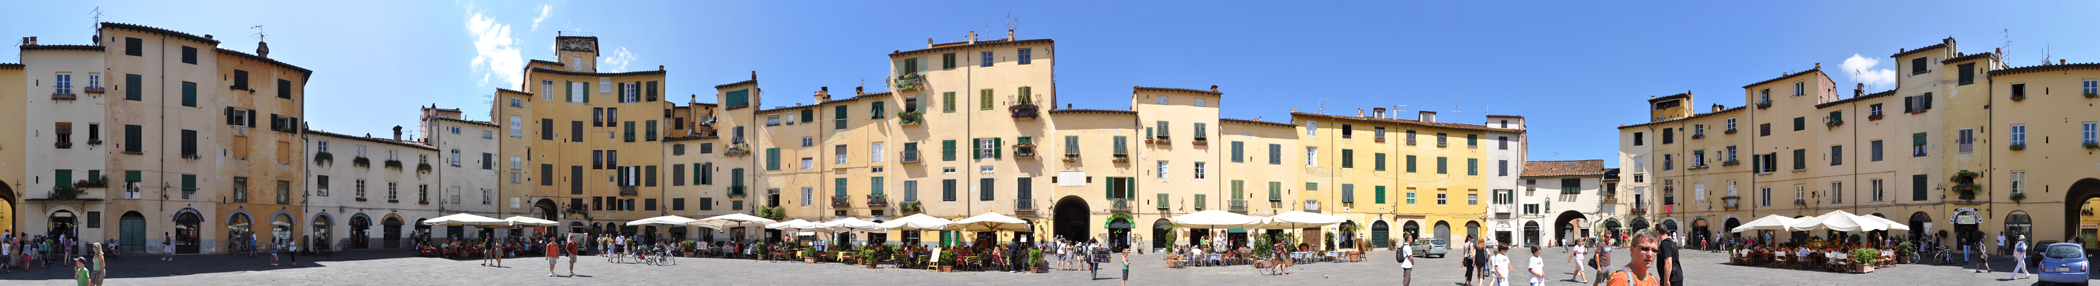 LUCCA GUIDA TURISTICA EBOOK DOWNLOAD